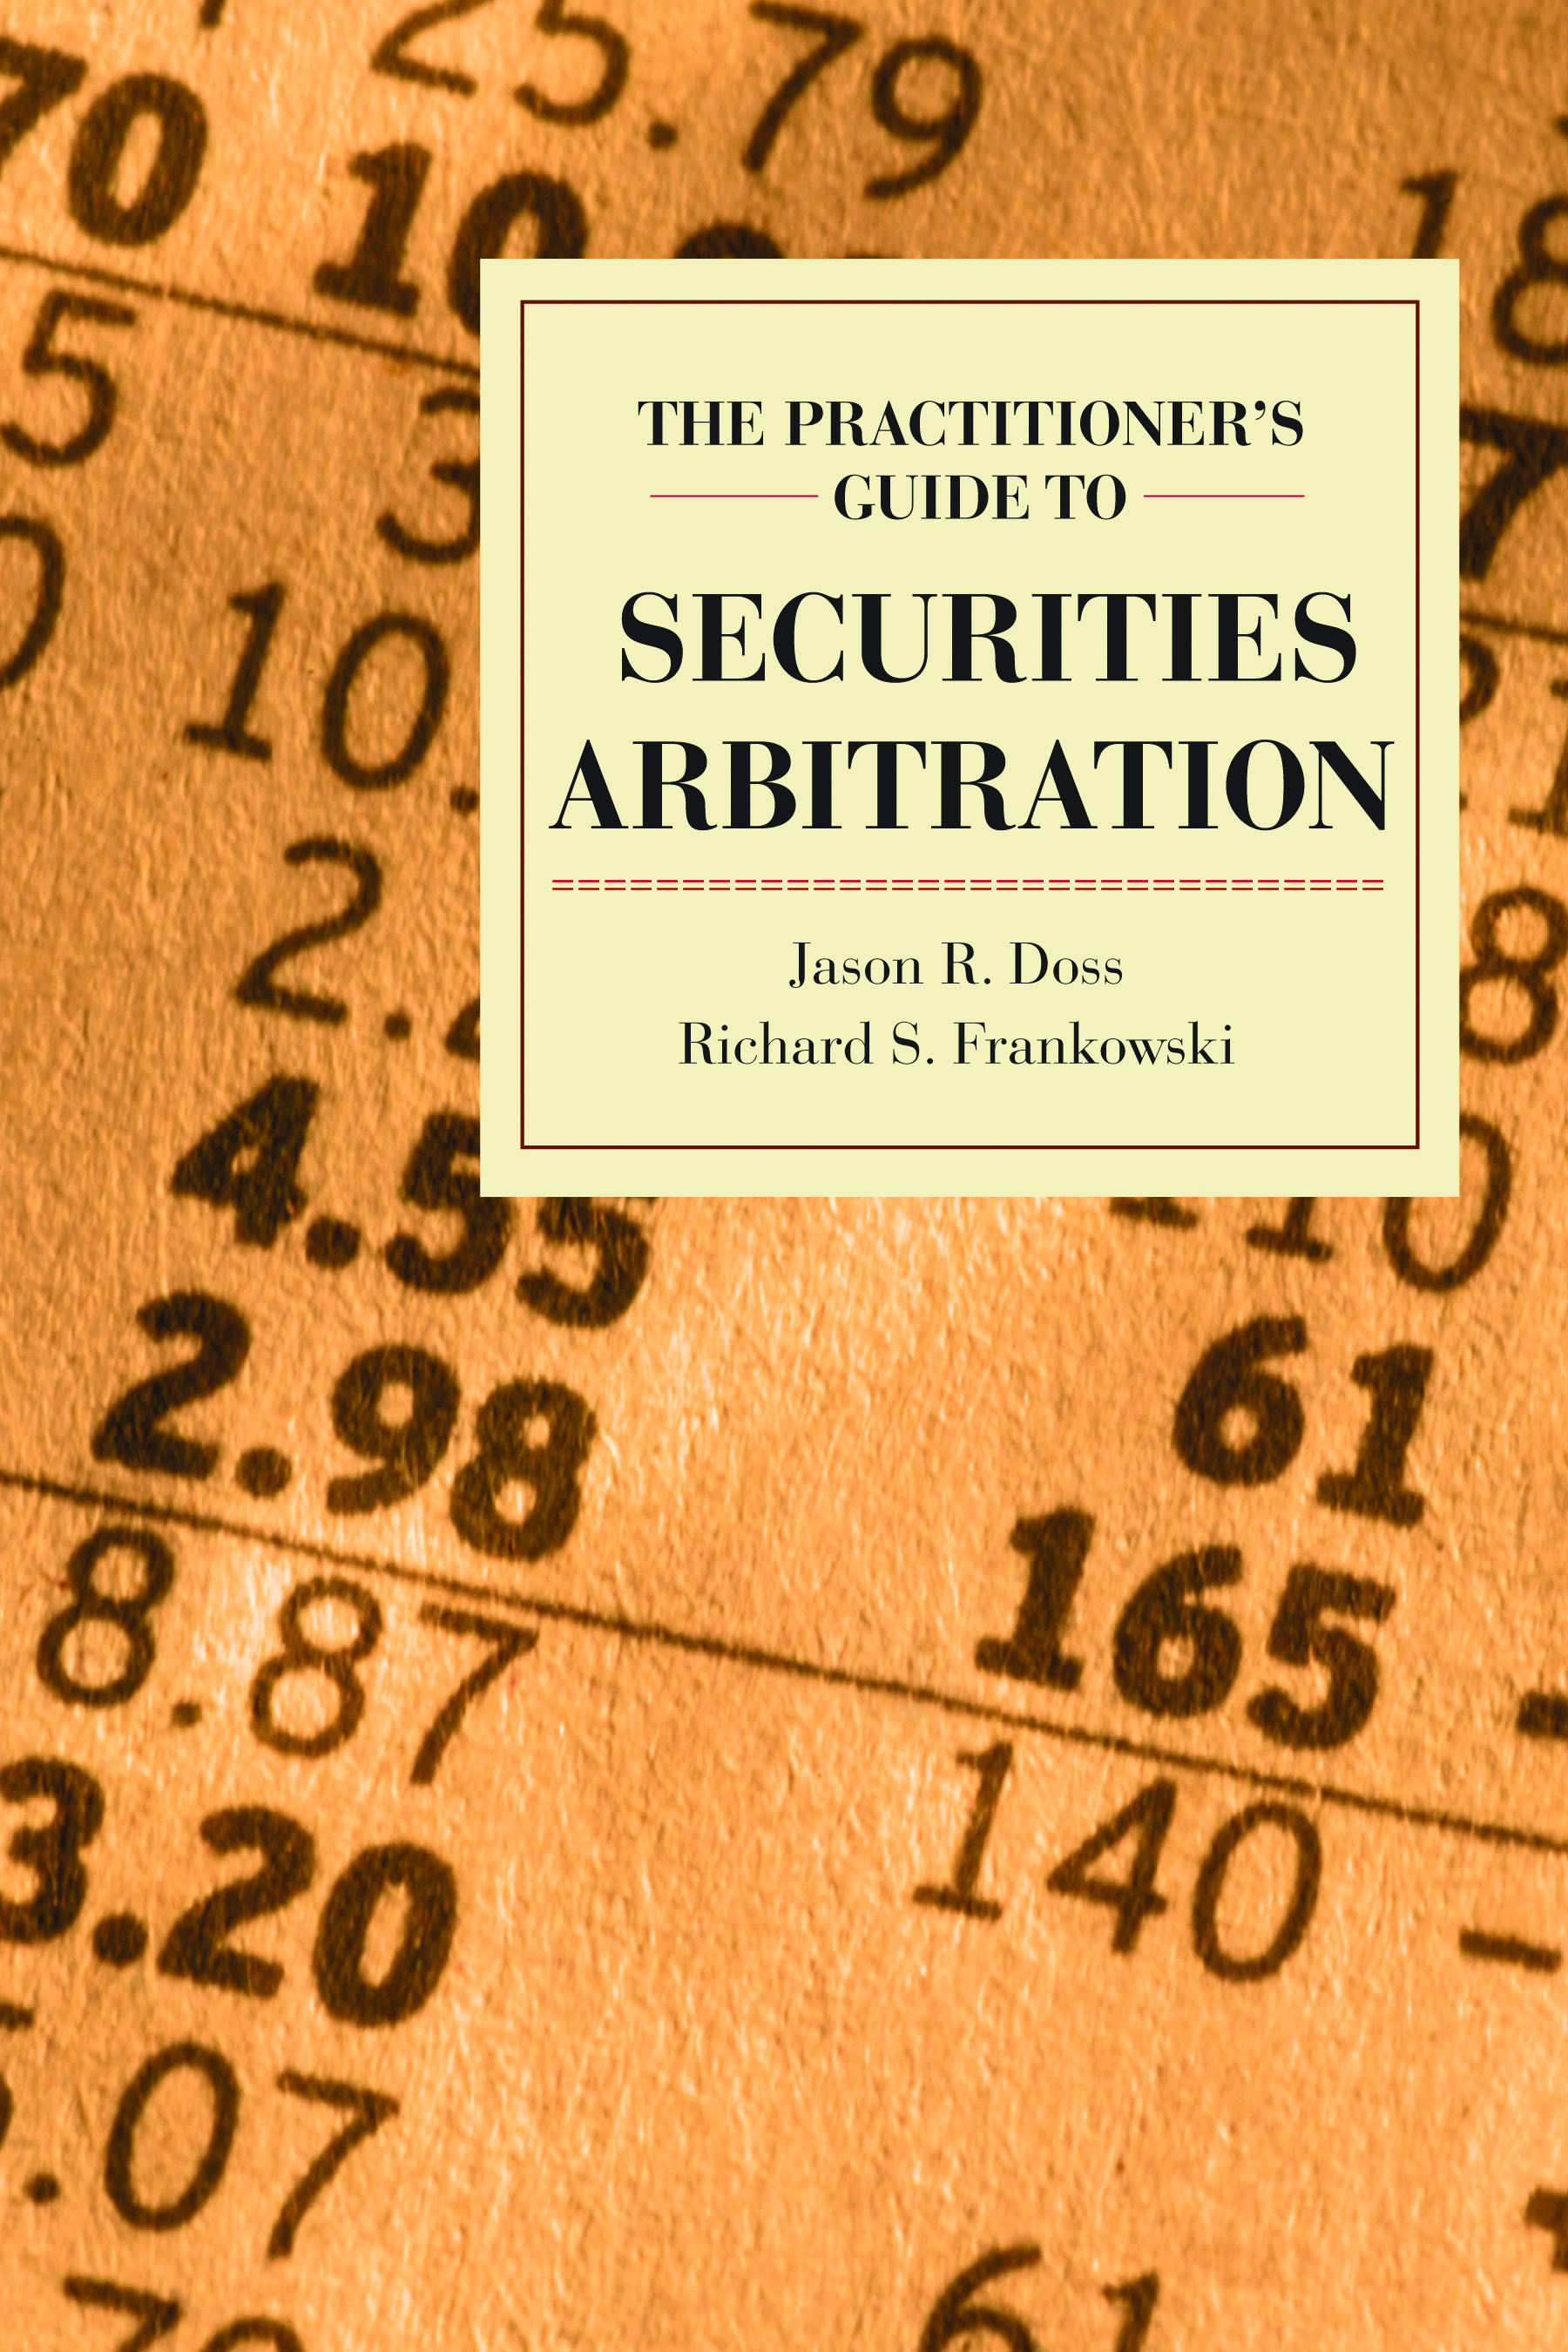 Securities Arbitration